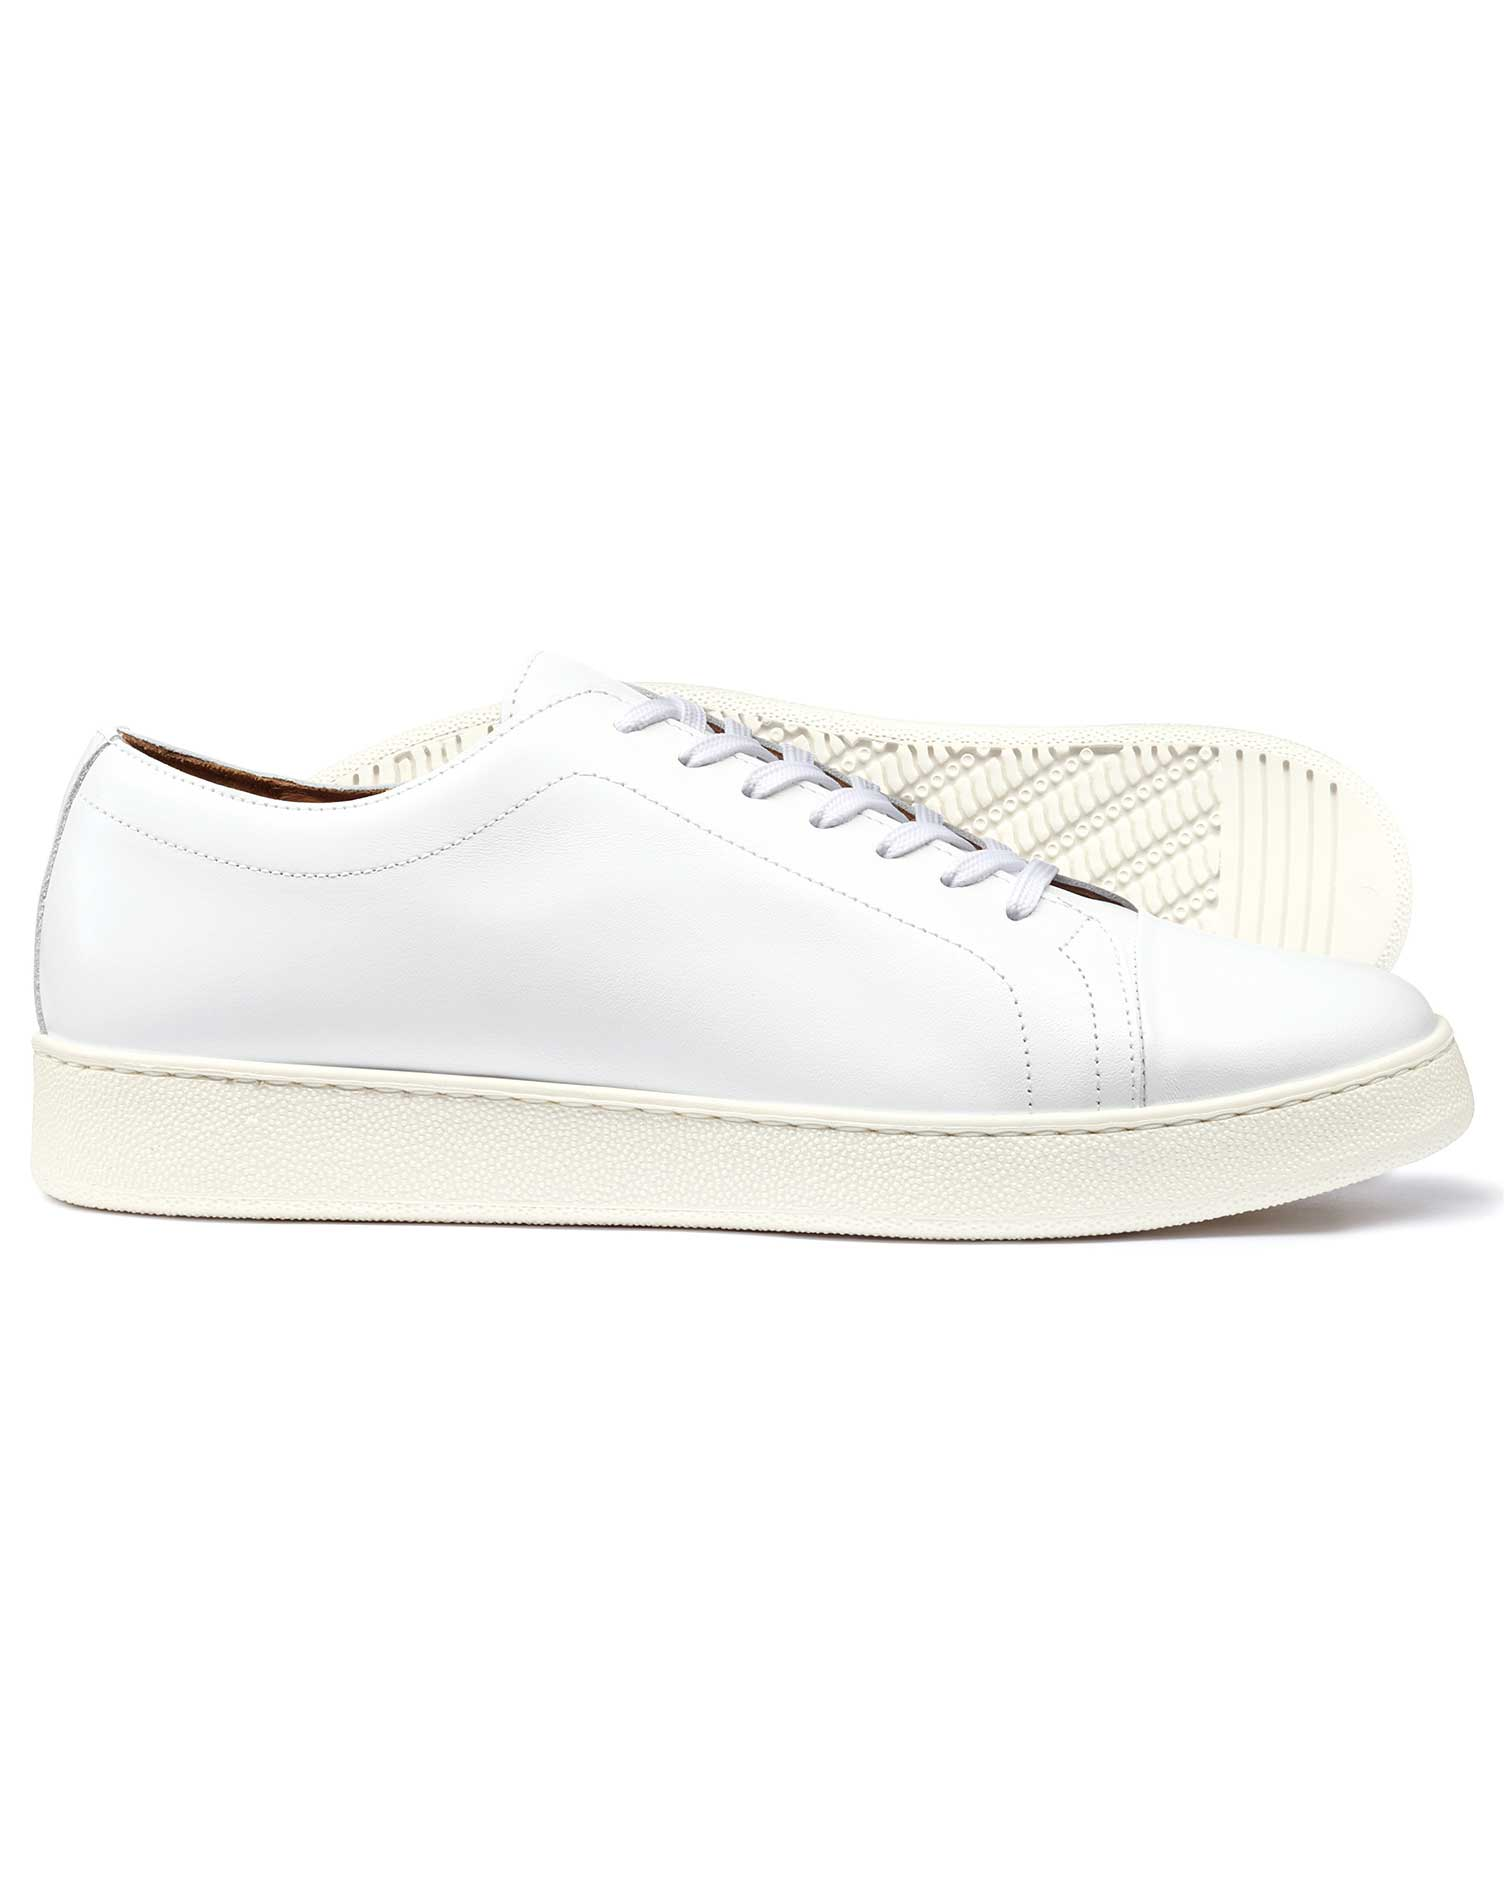 White Trainers Size 7 R by Charles Tyrwhitt